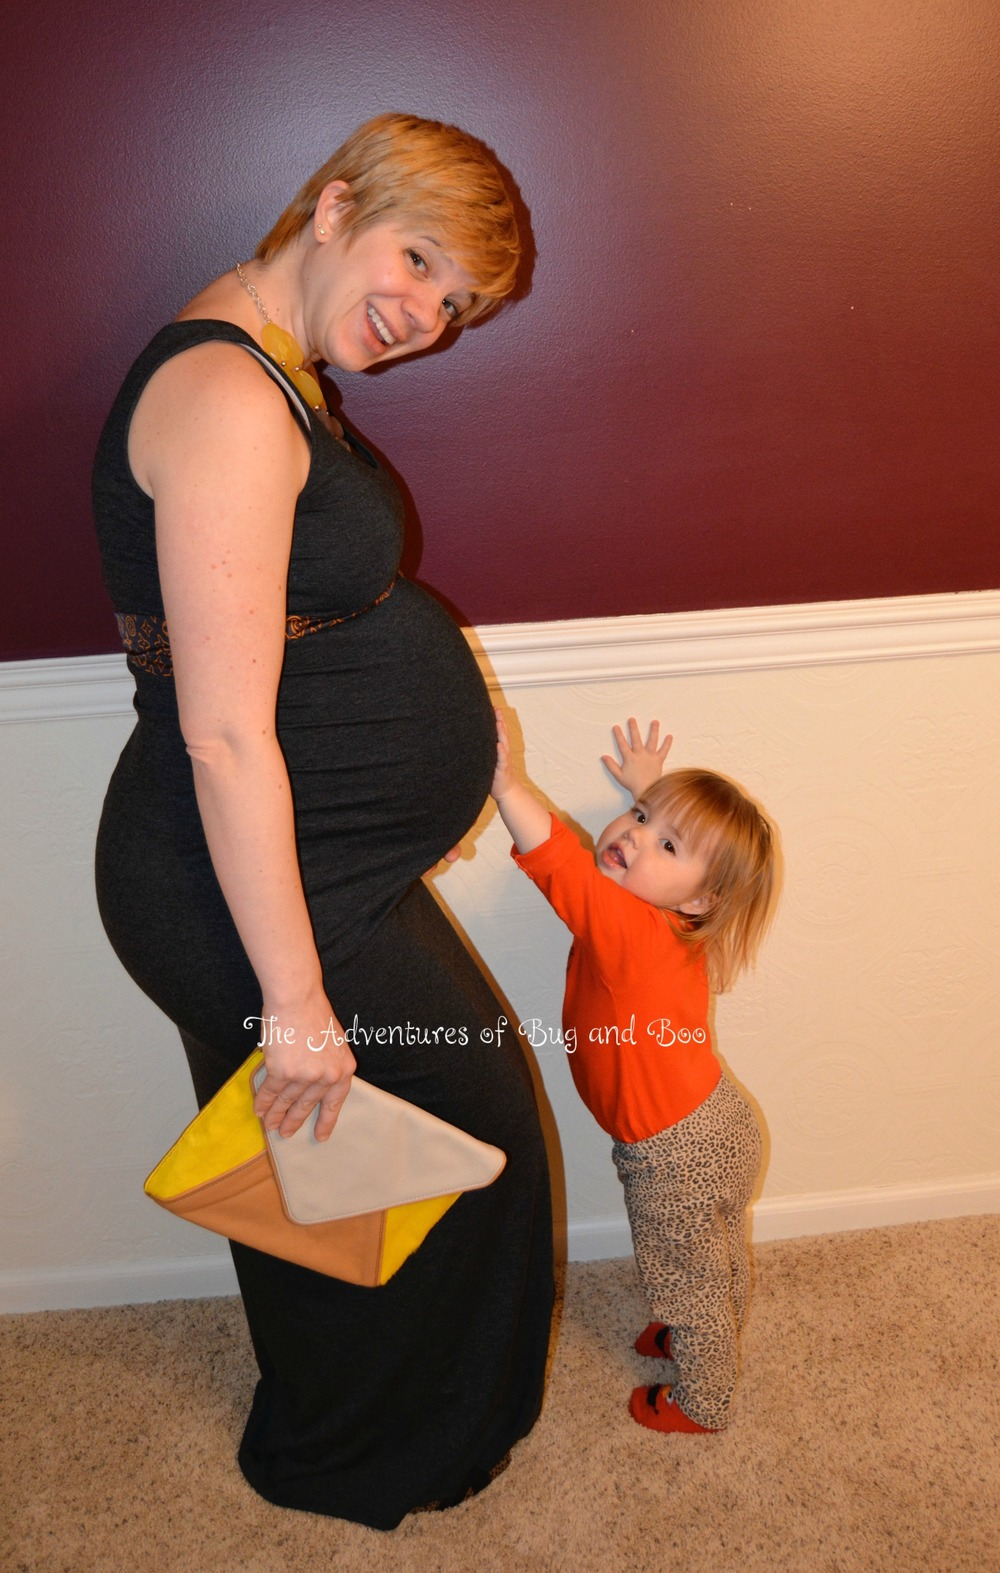 There's a little Peanut in that big ol' belly...nearly to the finish line in this pic!